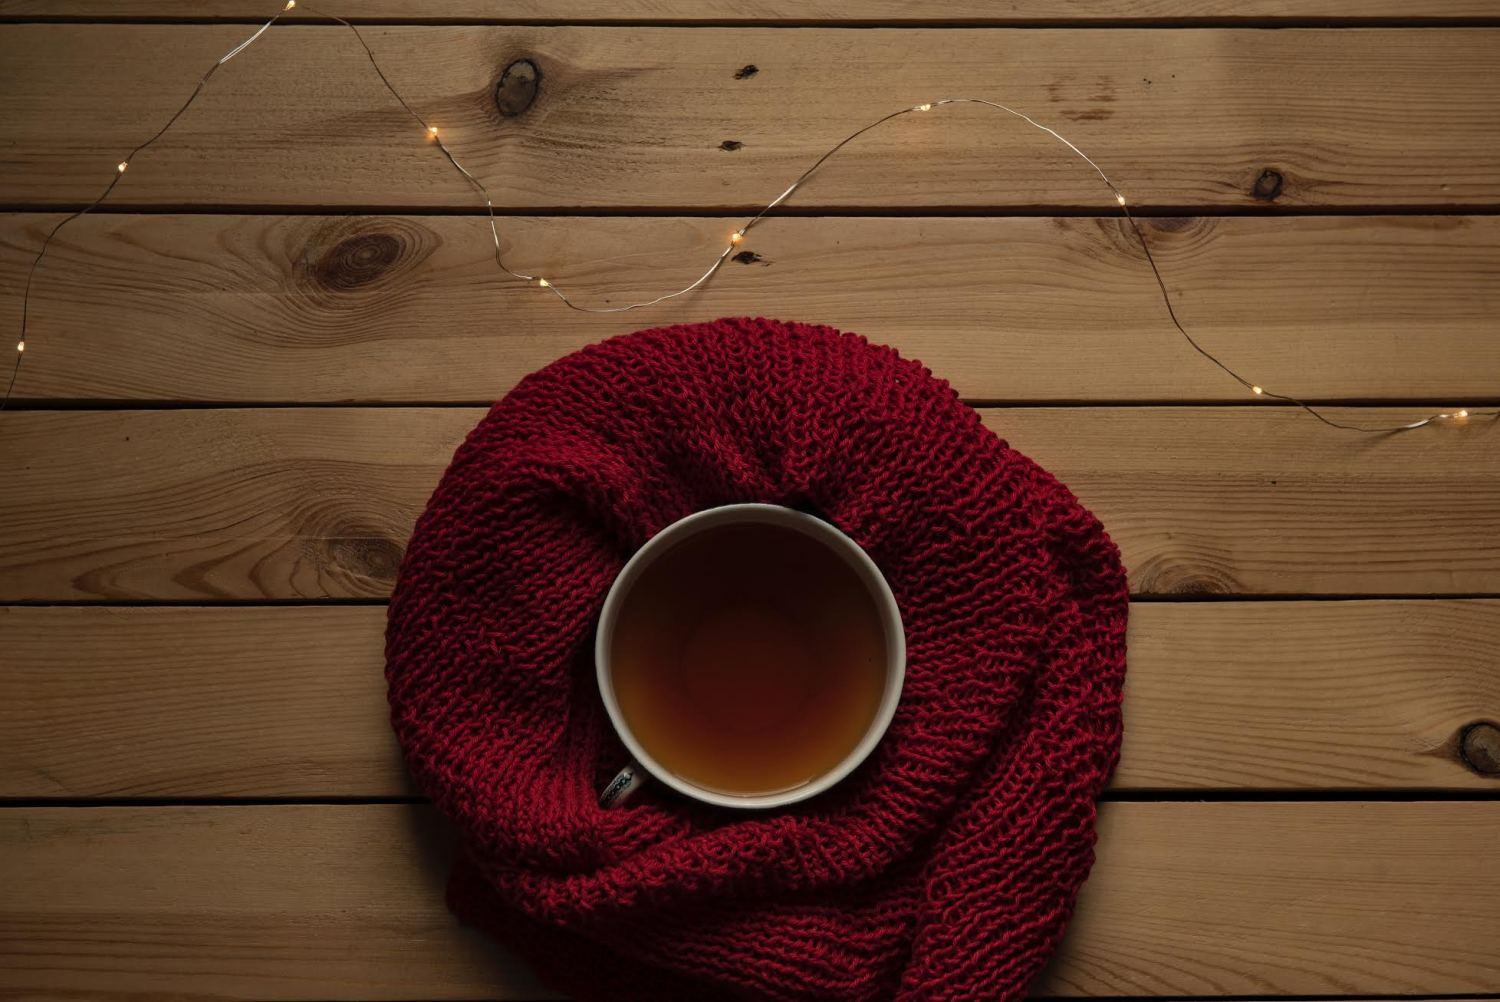 Ways to practice self-care in the winter months